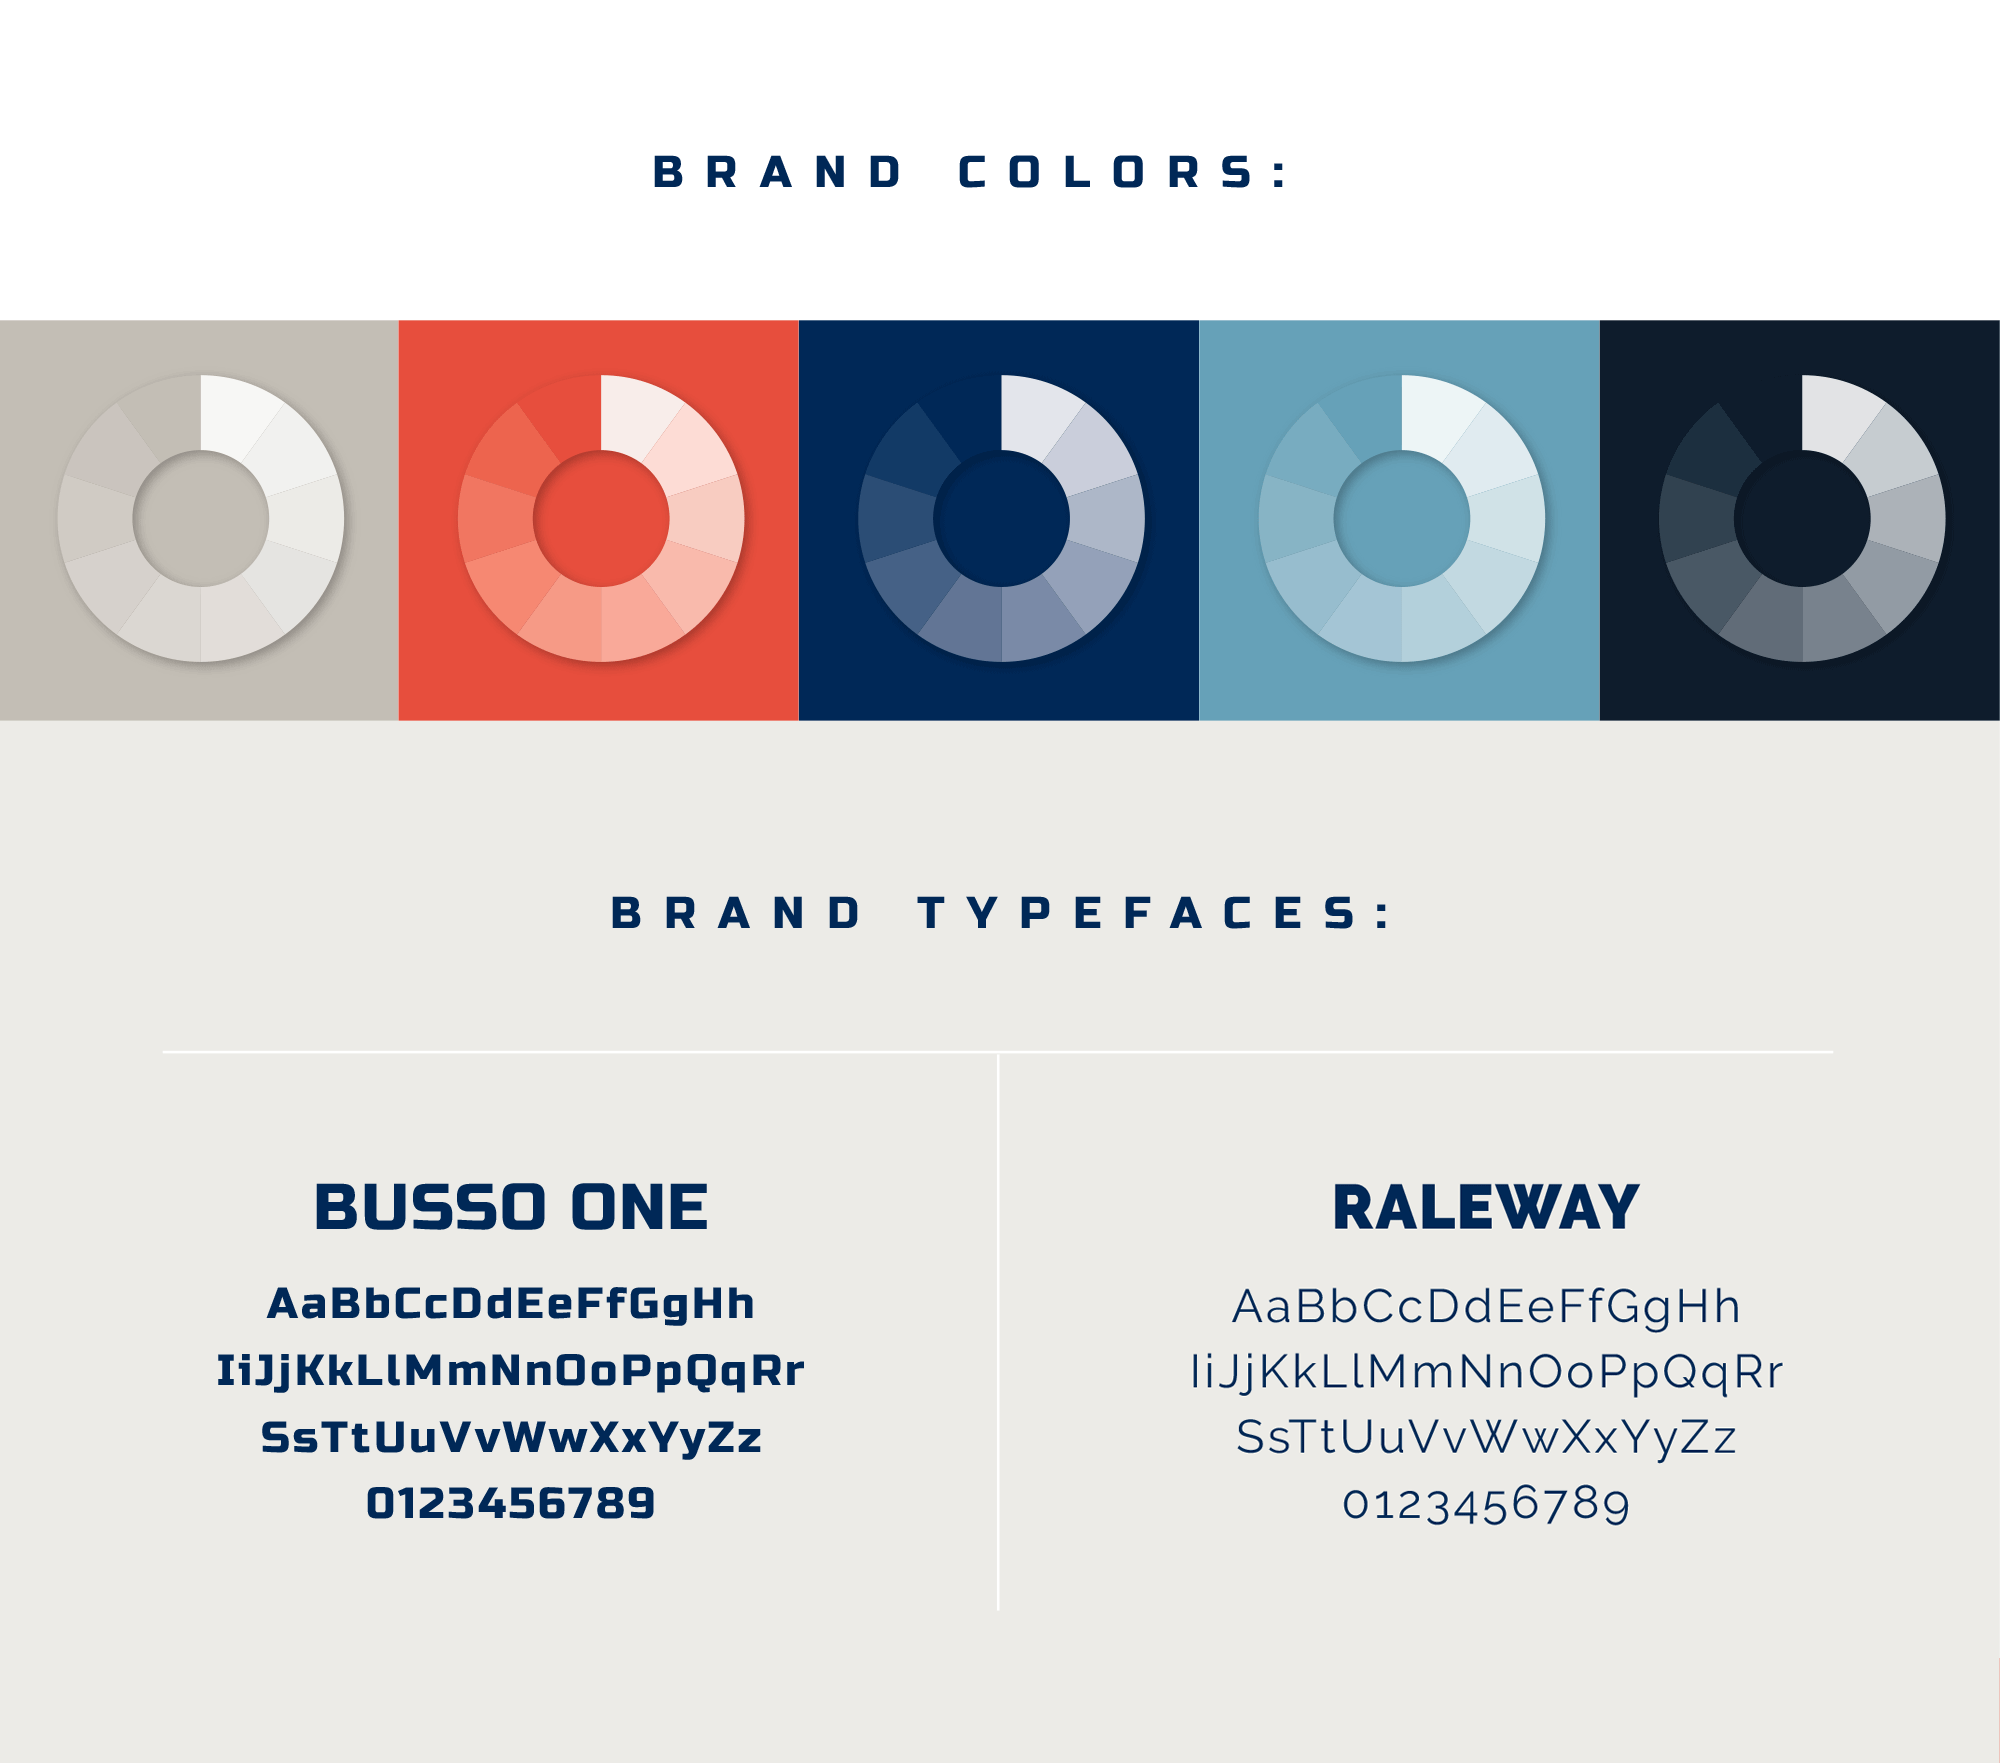 Ditat brand colors and fonts